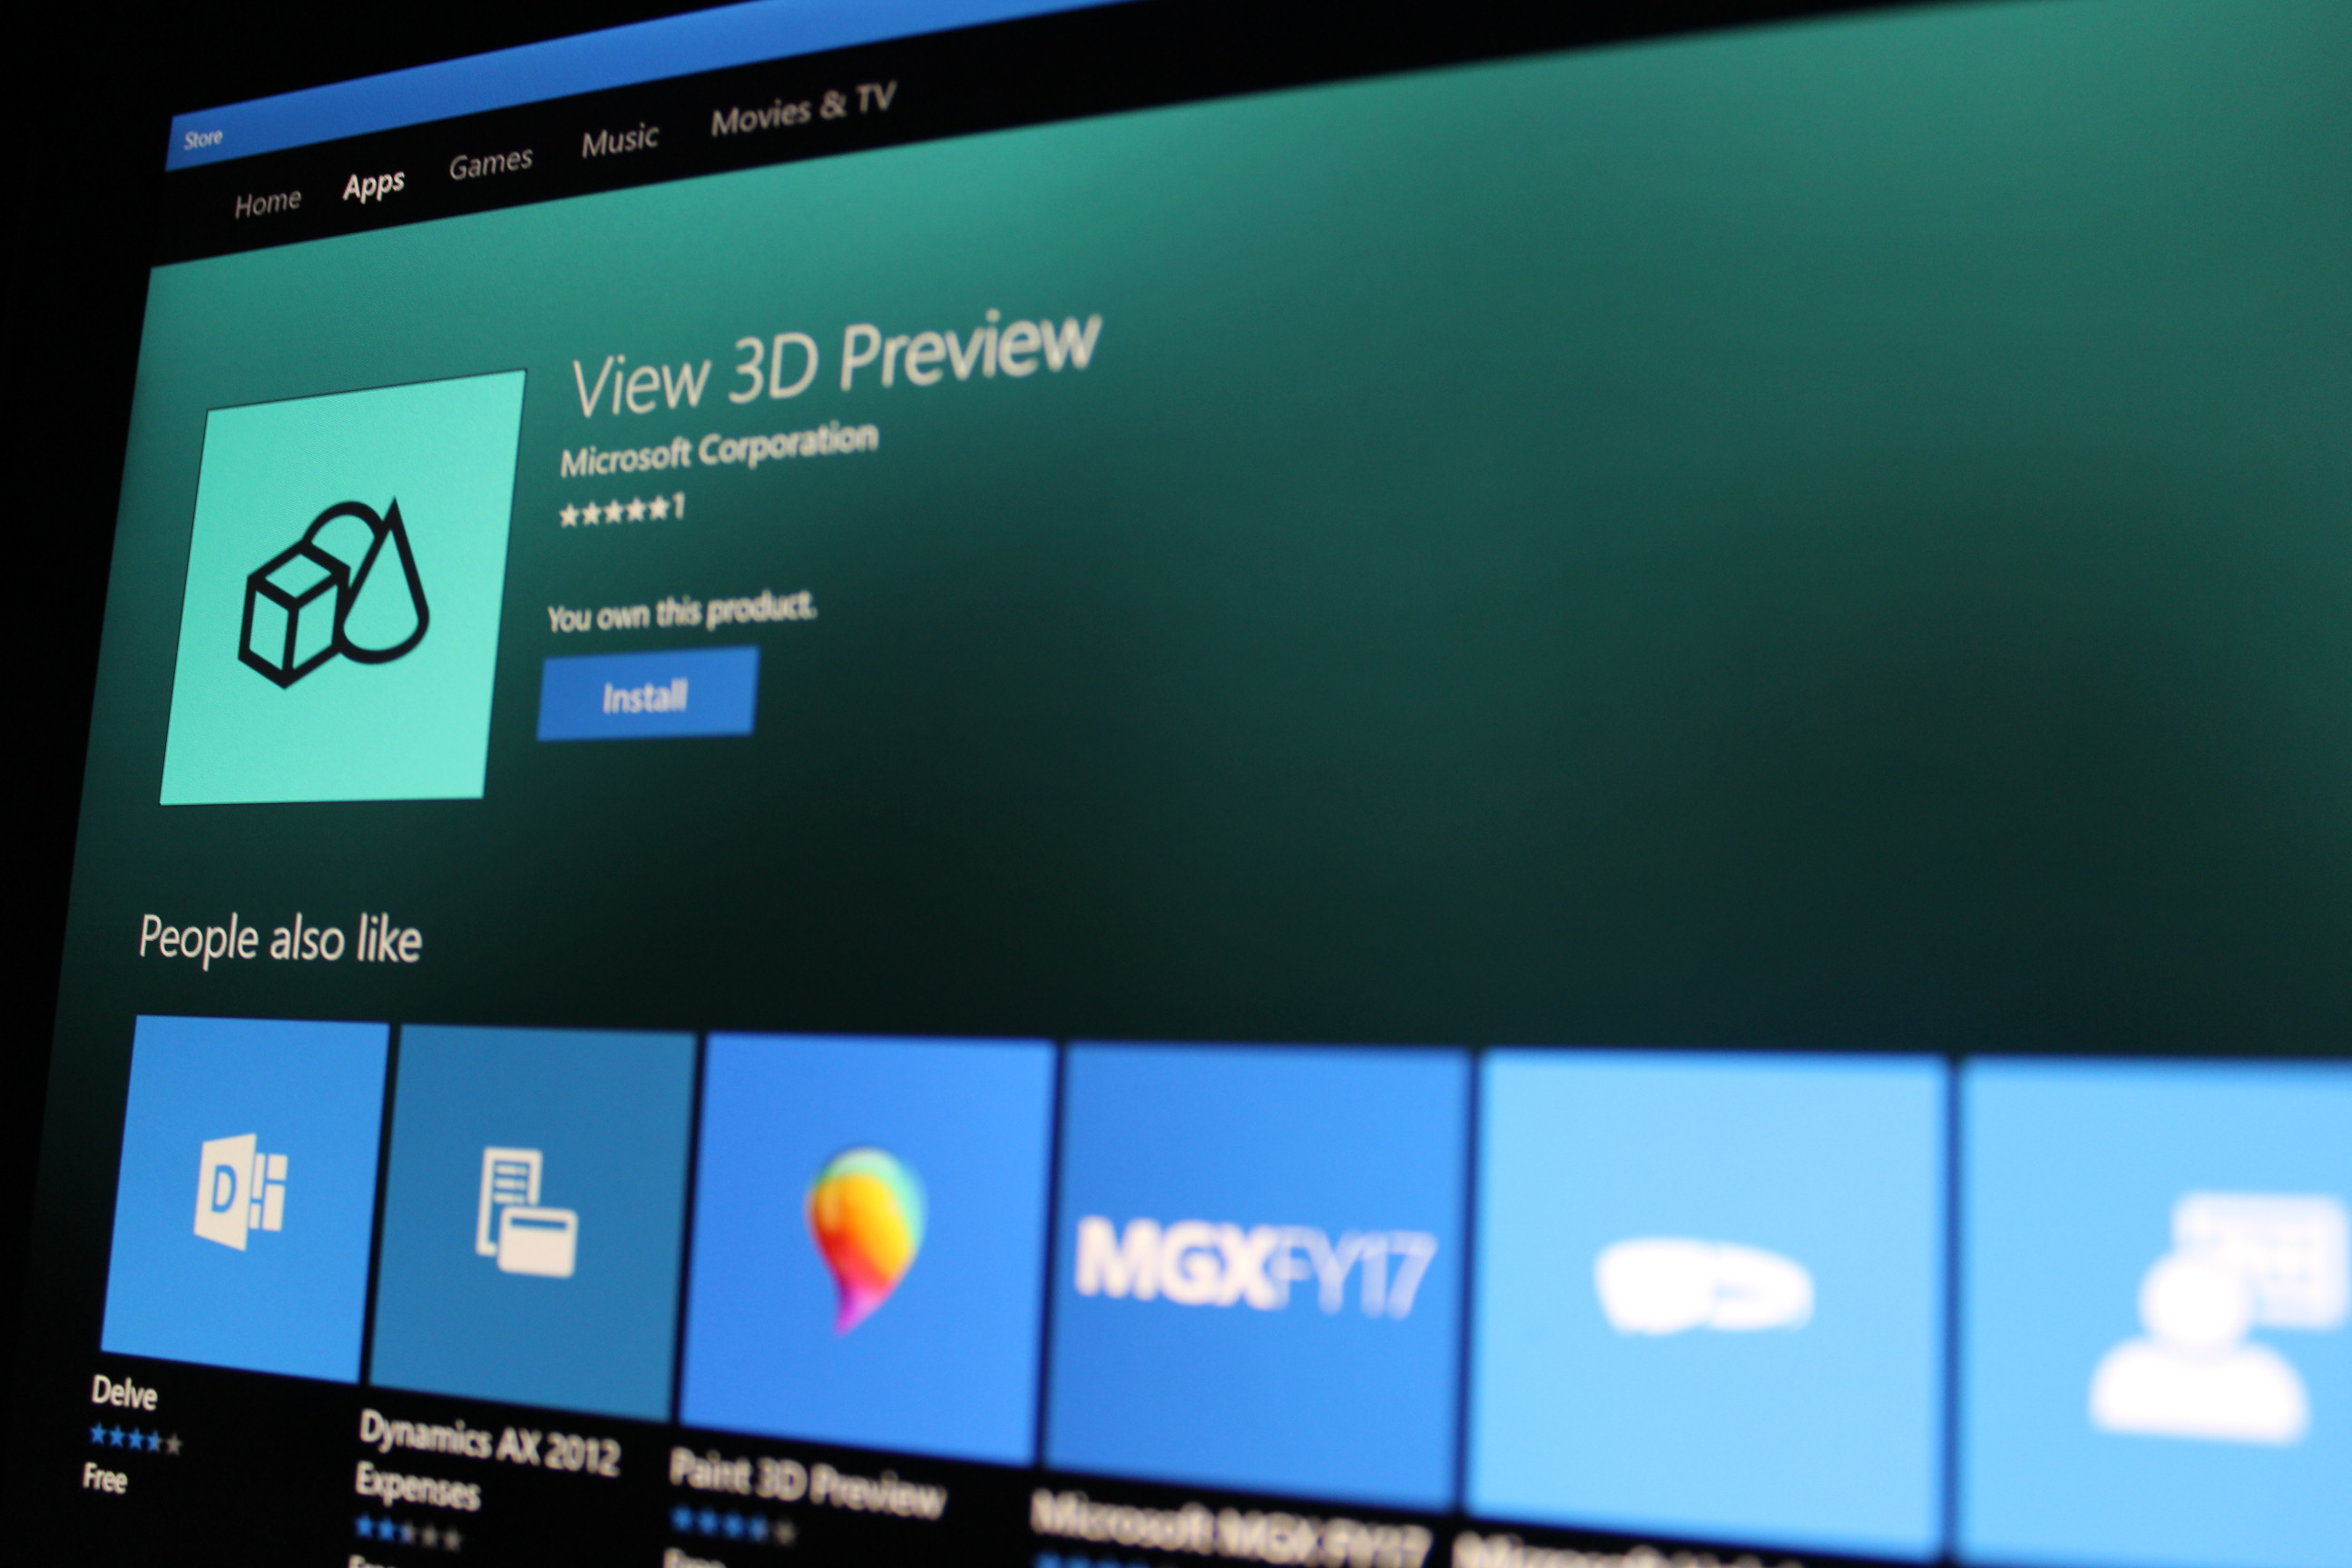 View 3d Updated With The New Mixed Reality Feature Working Of 3 D Tv Microsoft Had Shown At Build 2017 How They Are To Bring Objects Into Real Life By Using App Also Given A Demo That